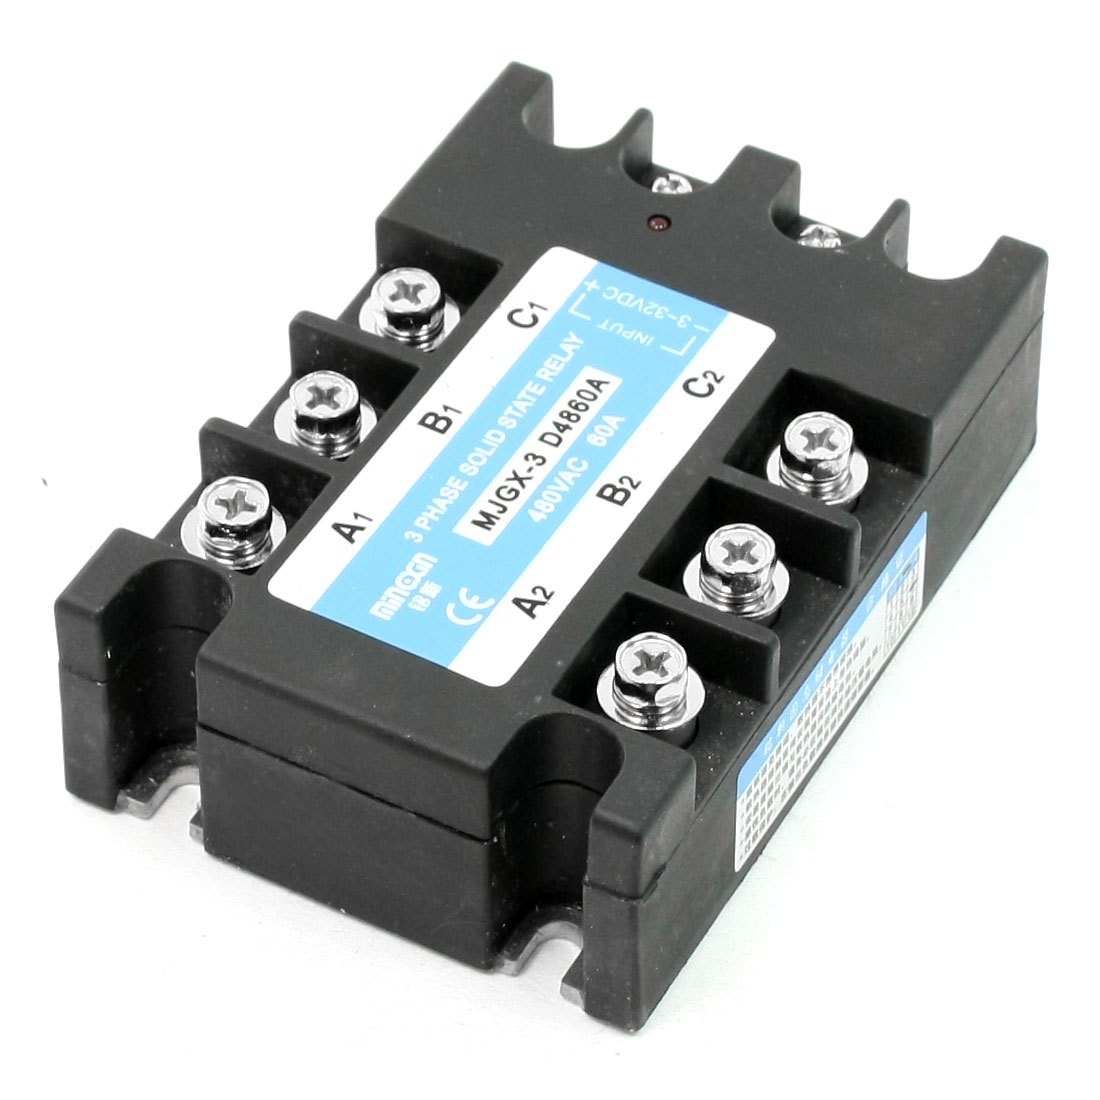 DC to AC Three Phase Solid State Relay MJGX-3 D4860A 480VAC 60A